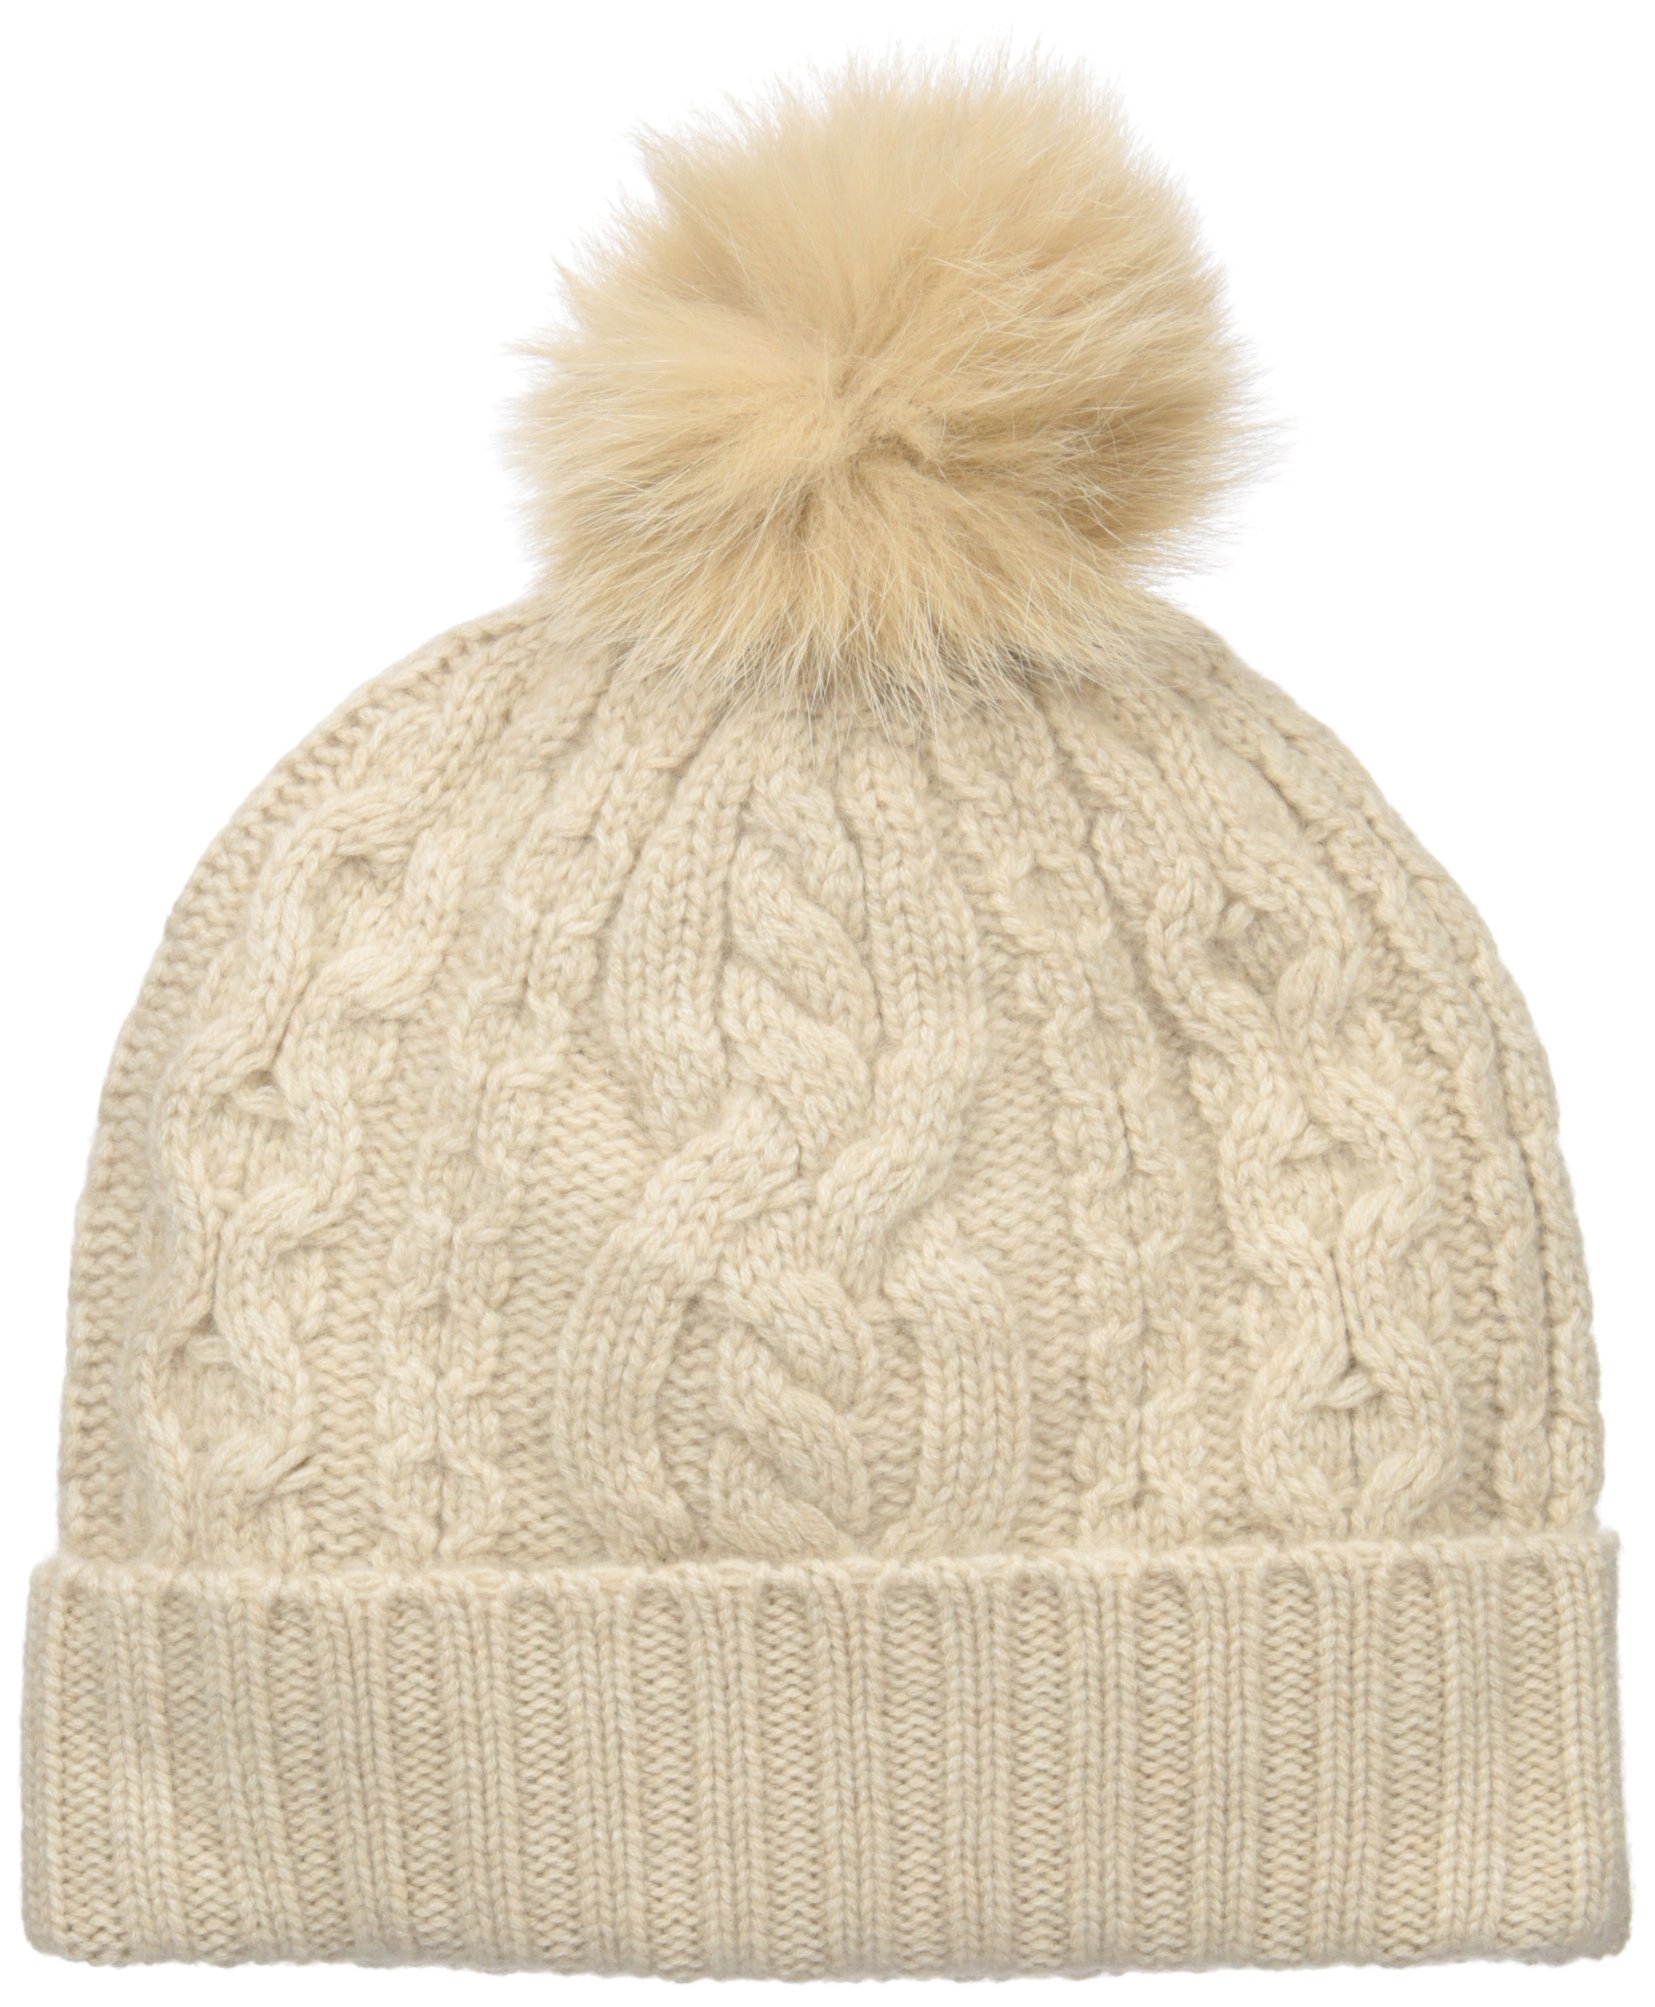 Sofia Cashmere Women's 100% Cashmere Cable Texture Hat With Fox Fur Pom, Oatmeal, One